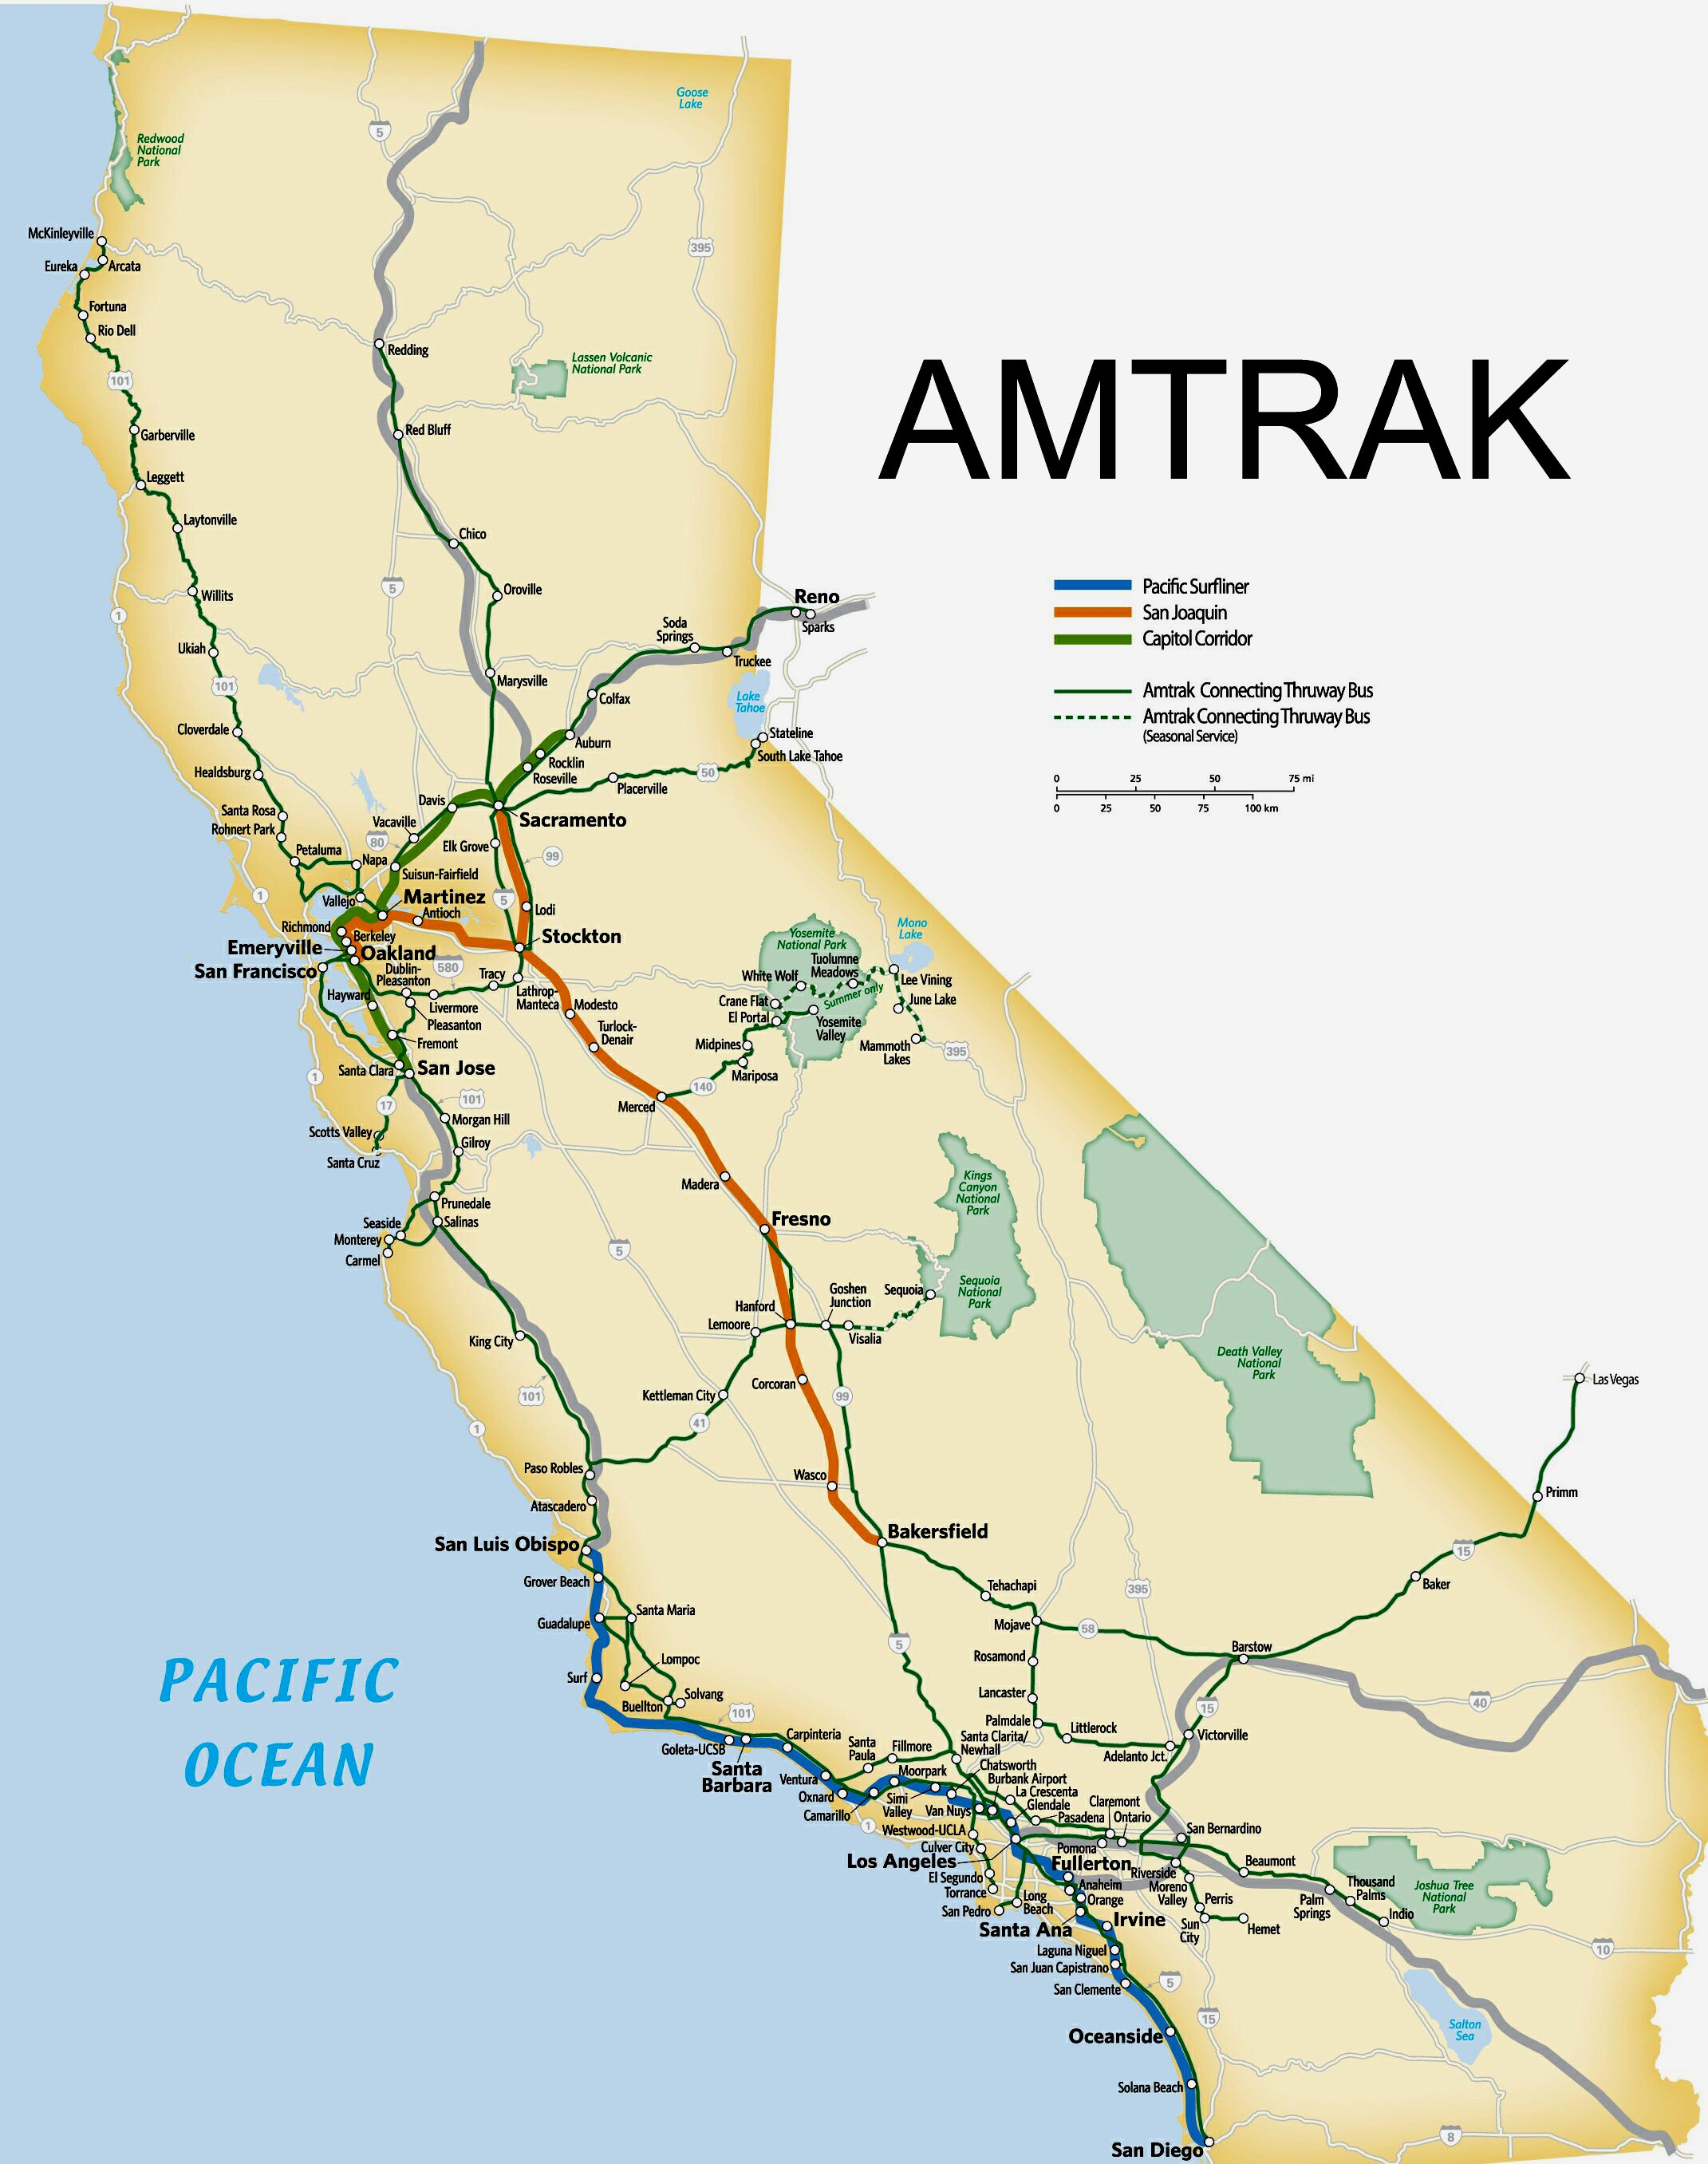 Amtrak Route Map Southern Map Of California Springs Amtrak Map - Amtrak Stops In California Map